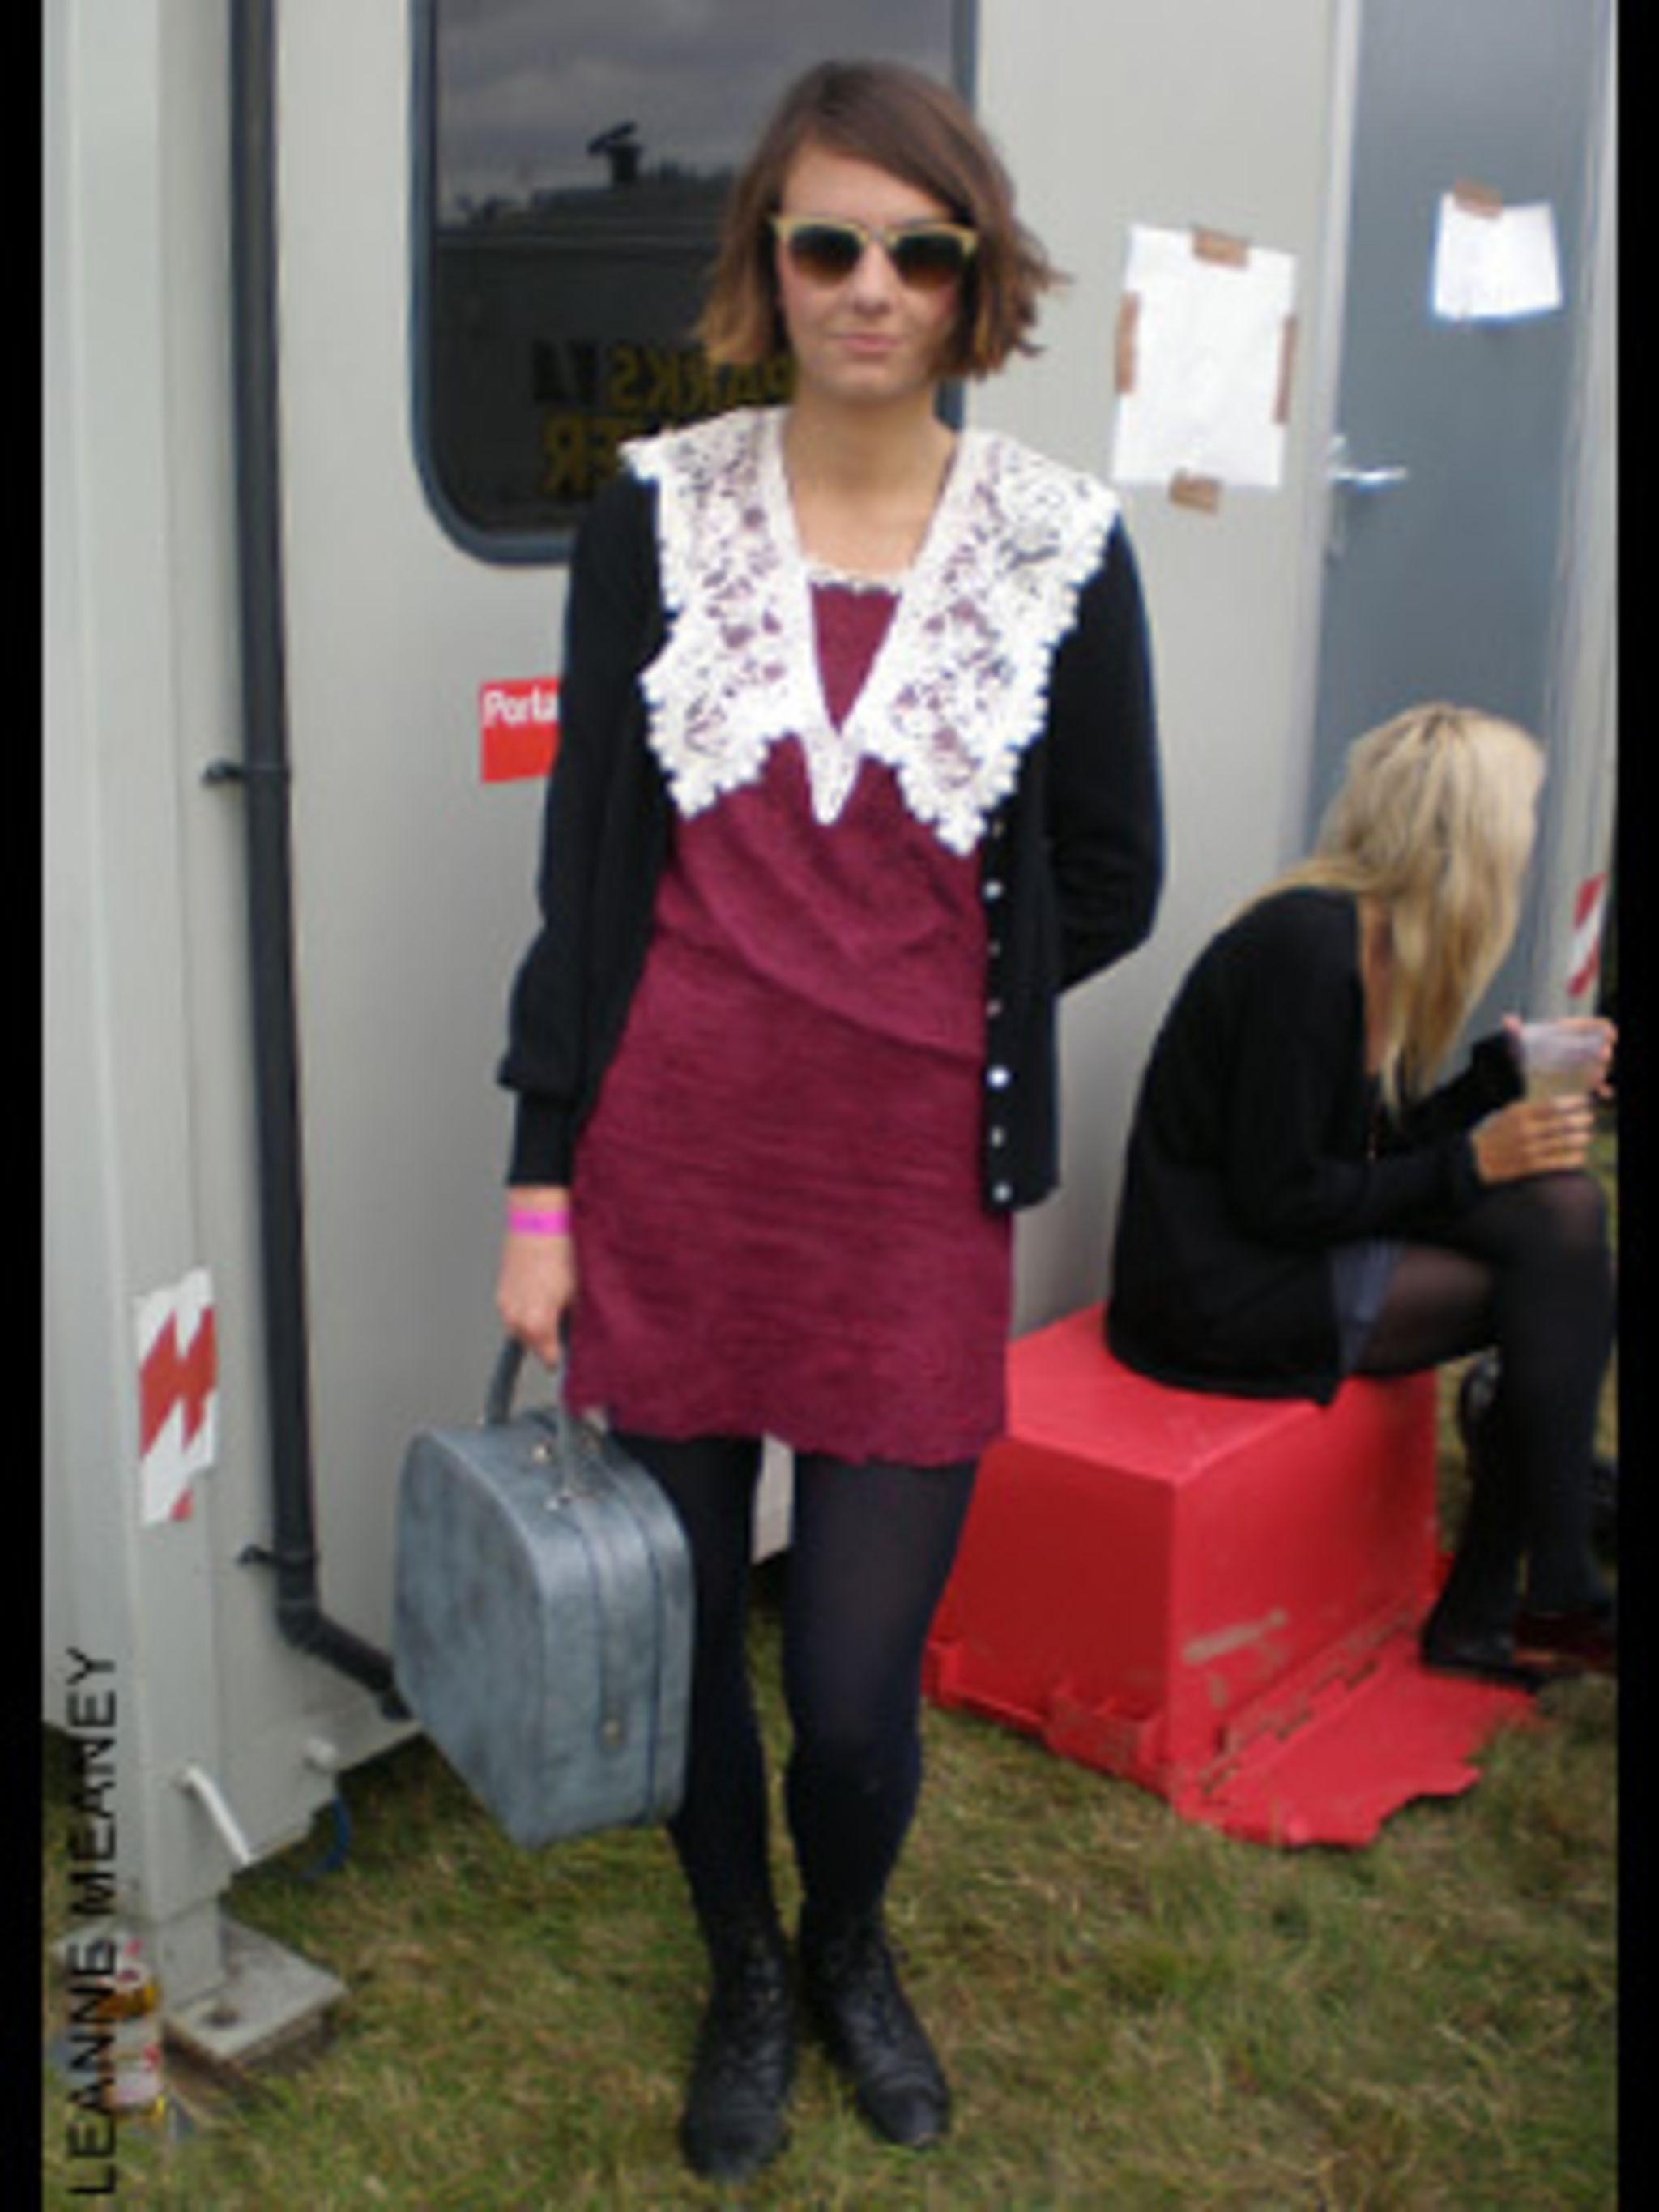 <p>Harry Webb, a 23 year old who works in Fashion PR is wearing a Dress from Beyond Retro, Boot's from Clarks and a vintage Bag.</p>